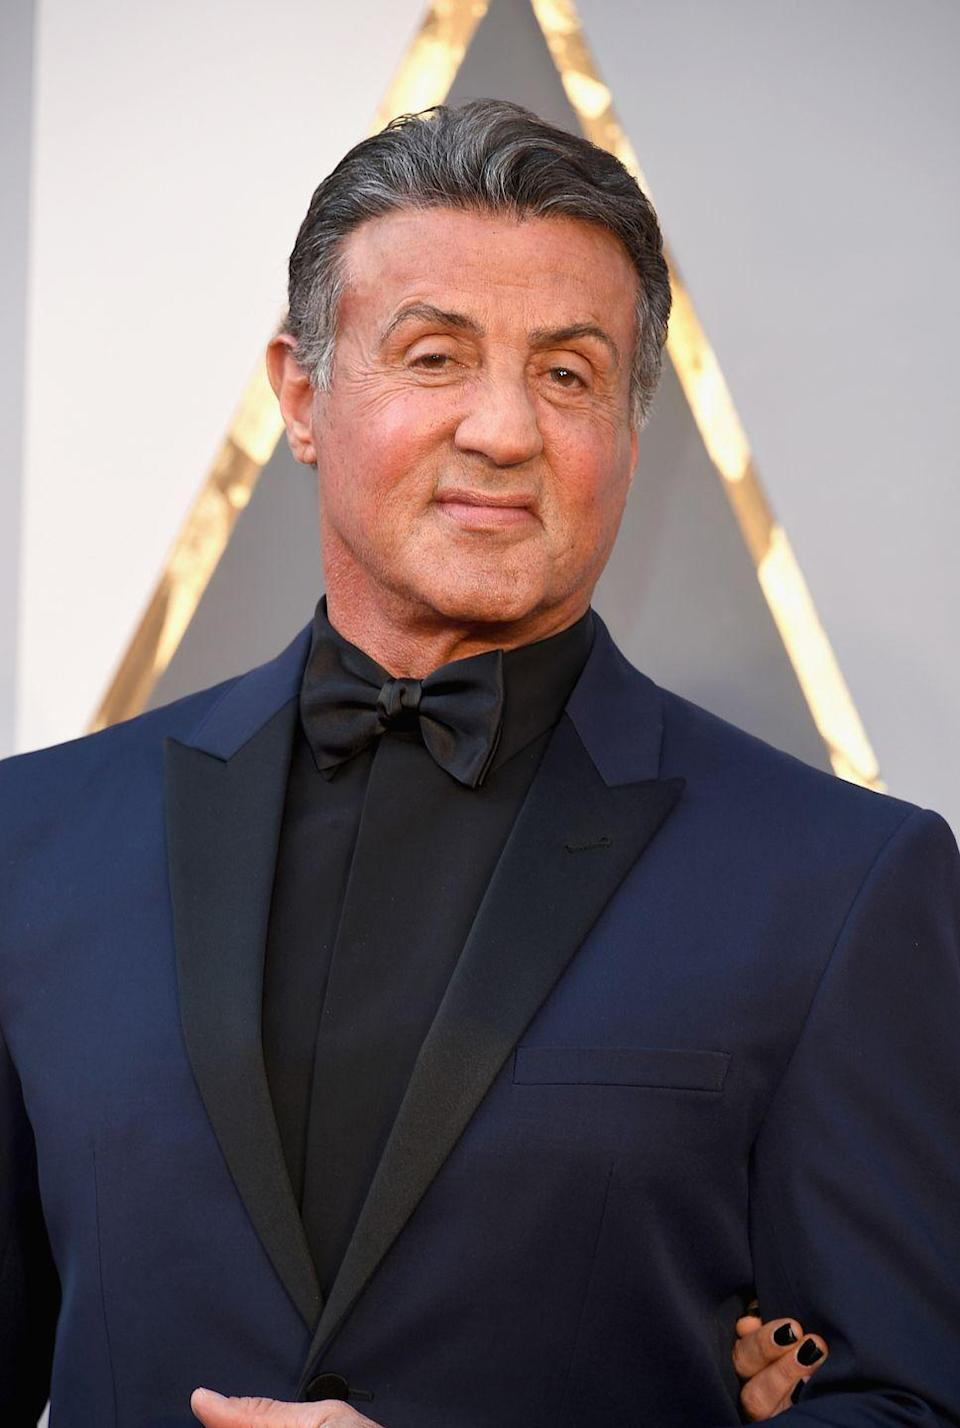 """<p>The iconic actor known for his roles in <em>Rocky</em> talked to <em><a href=""""https://www.gq.com/story/sylvester-stallone-comedy-star"""" rel=""""nofollow noopener"""" target=""""_blank"""" data-ylk=""""slk:GQ"""" class=""""link rapid-noclick-resp"""">GQ</a> </em>about the 1992 comedy which was,""""maybe one of the worst films in the entire solar system, including alien productions we've never seen."""" </p>"""